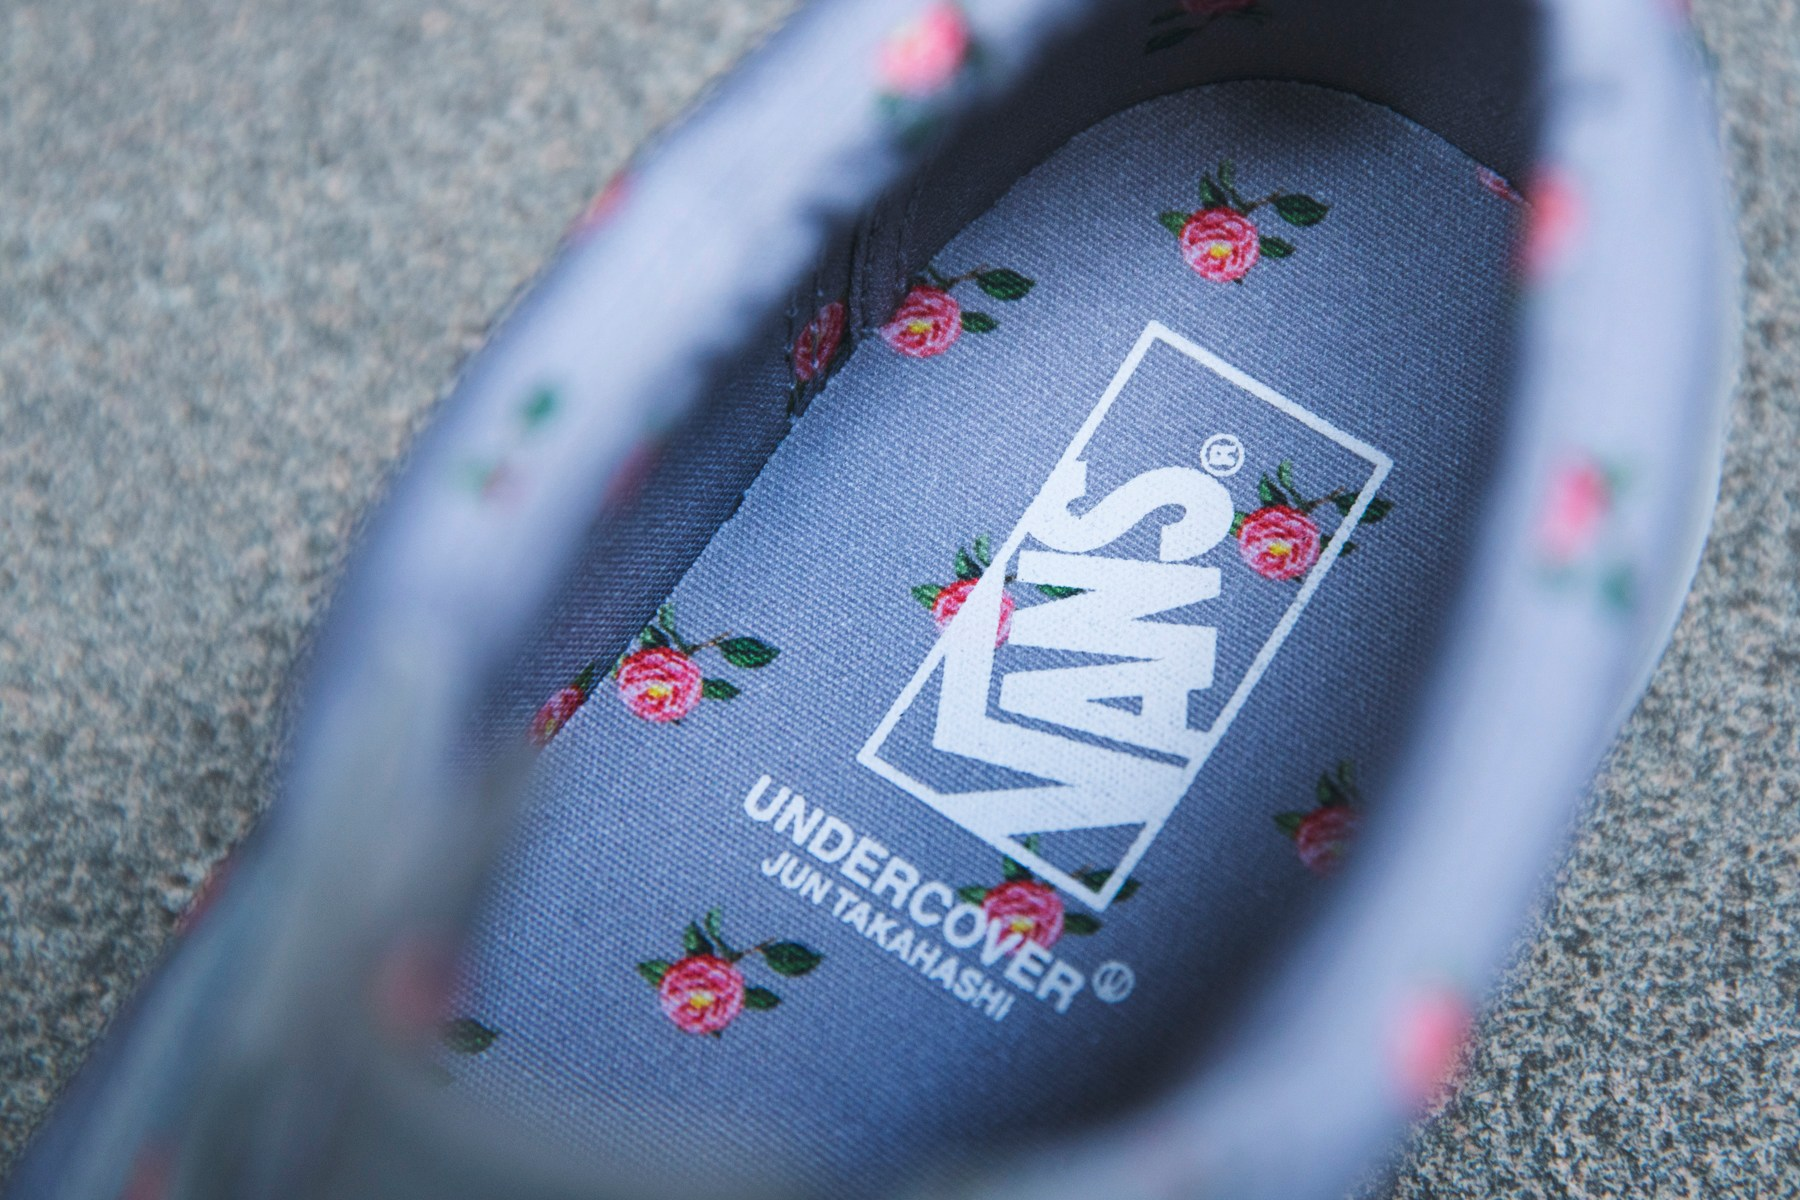 undercover-vans-2017-collaboration-368-04